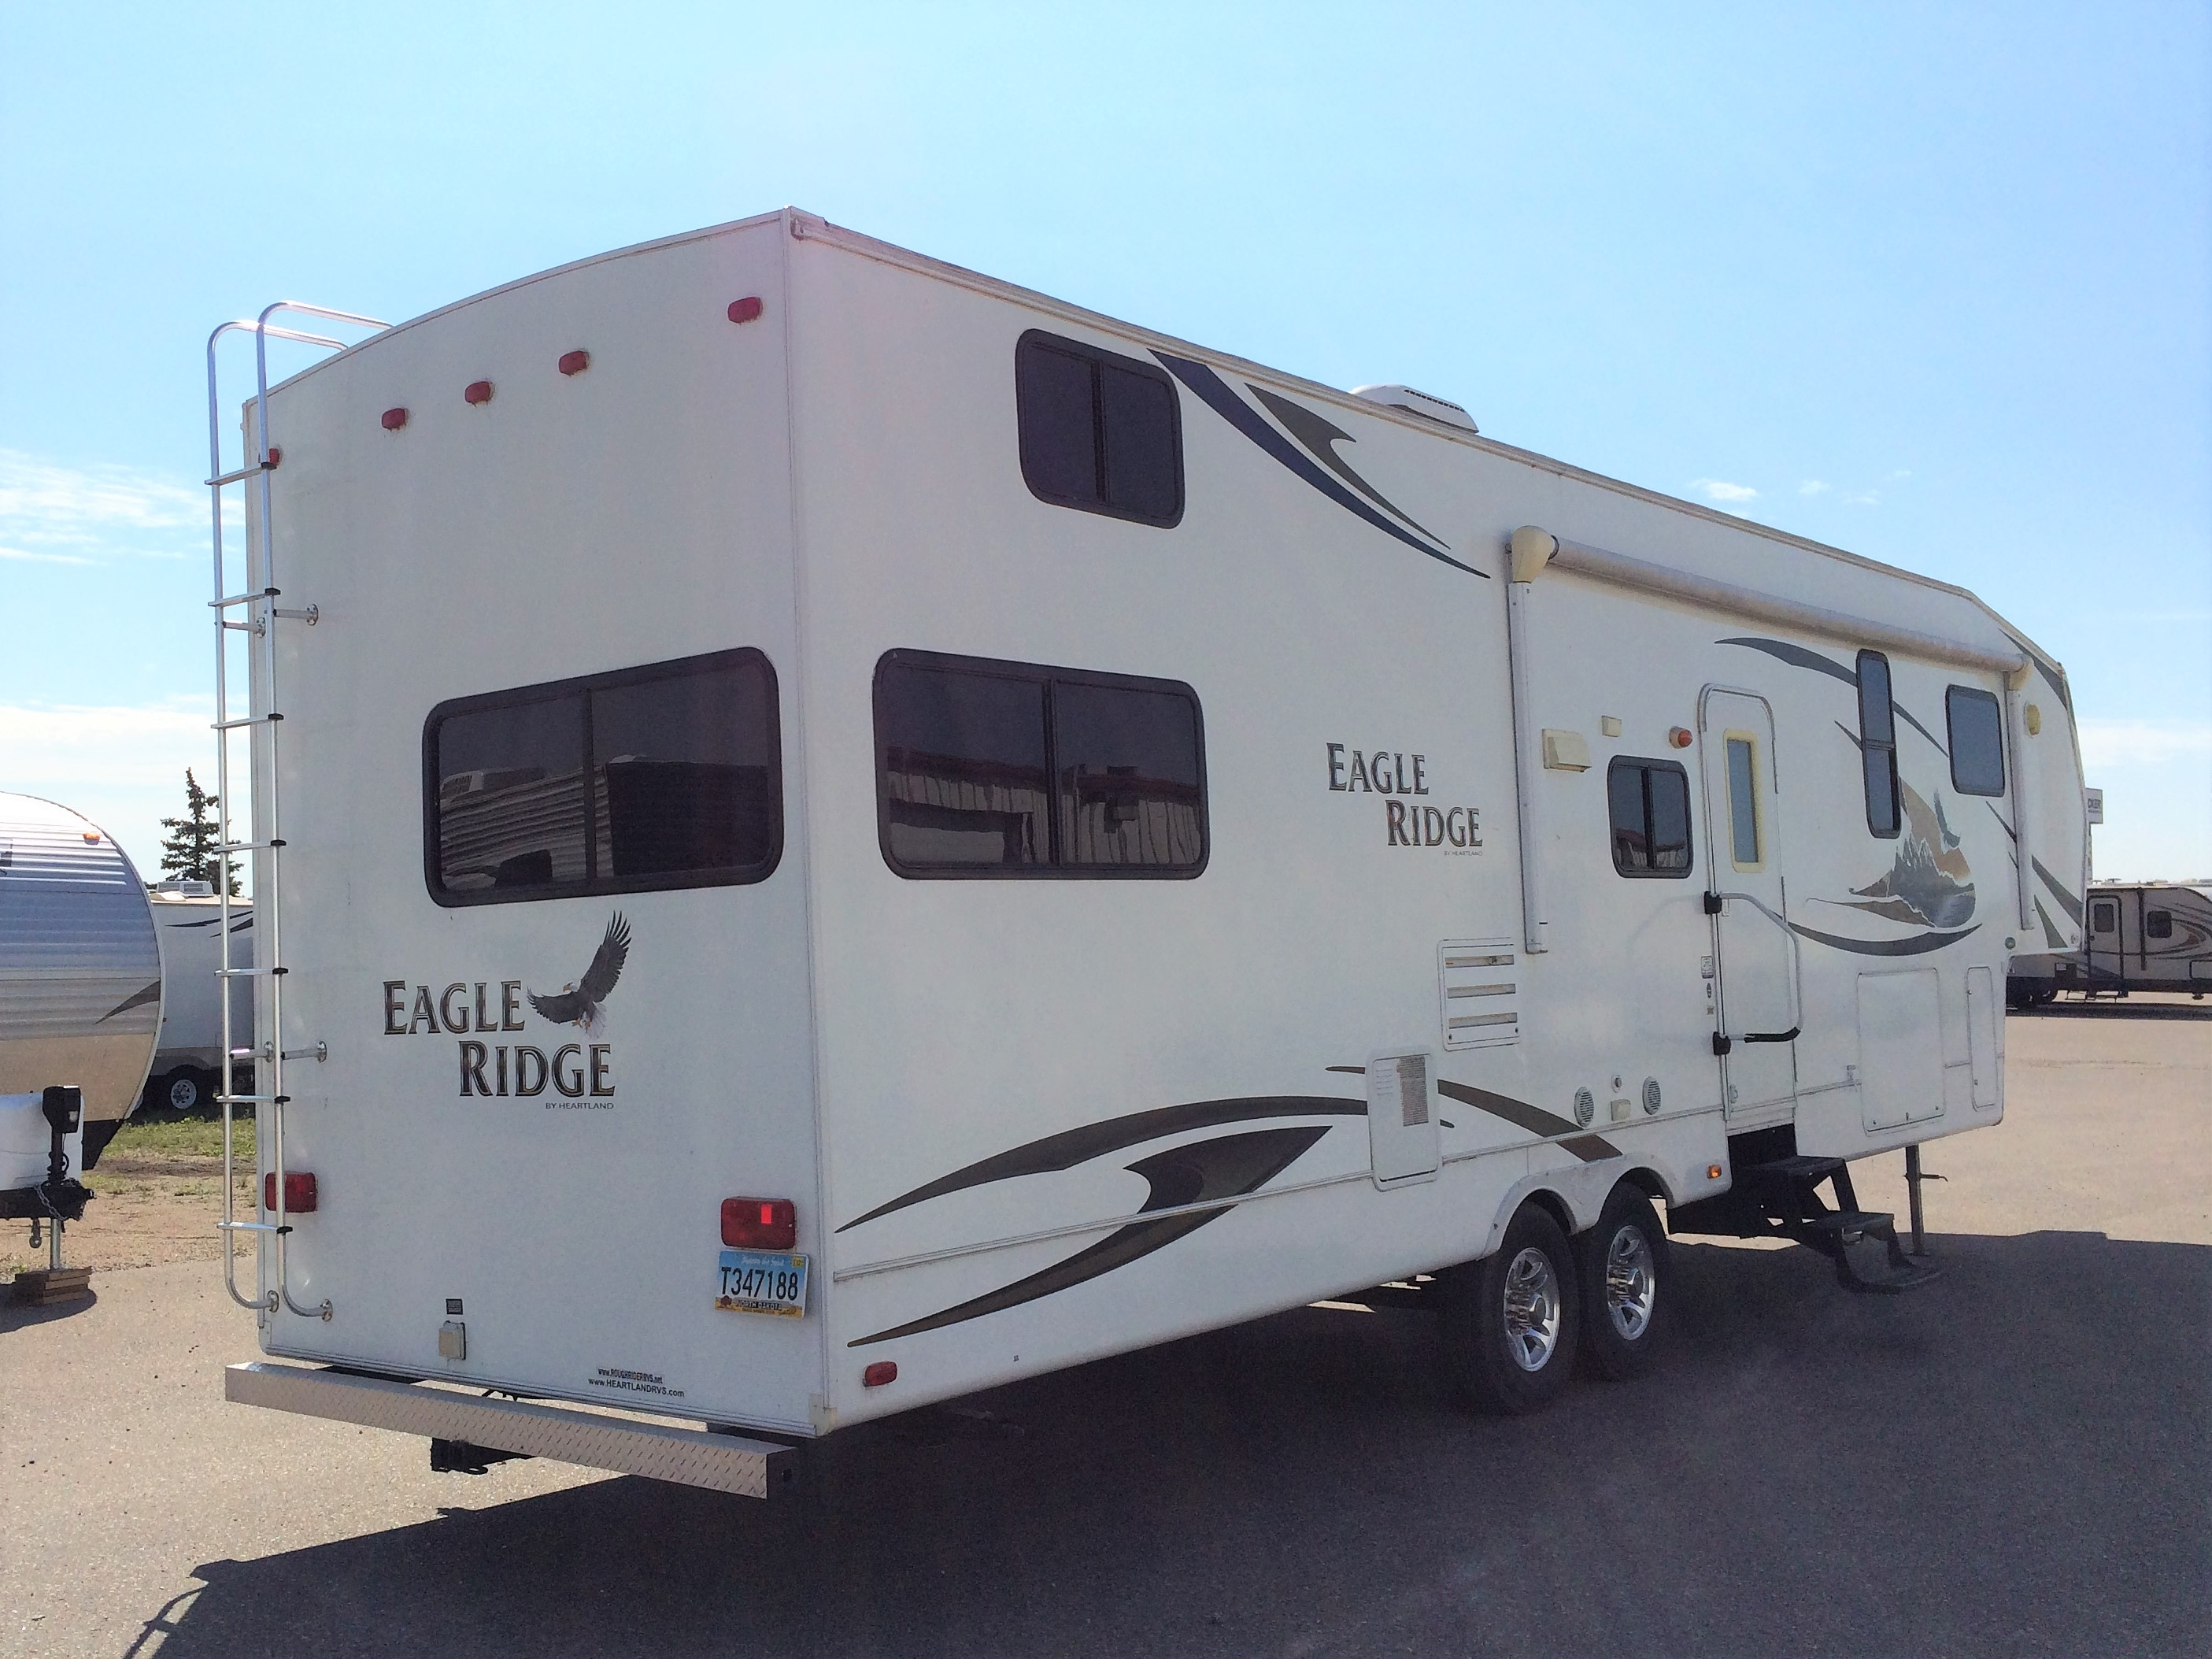 10FW3054 2010 Heartland Eagle Ridge 35DSRL Price $23 500